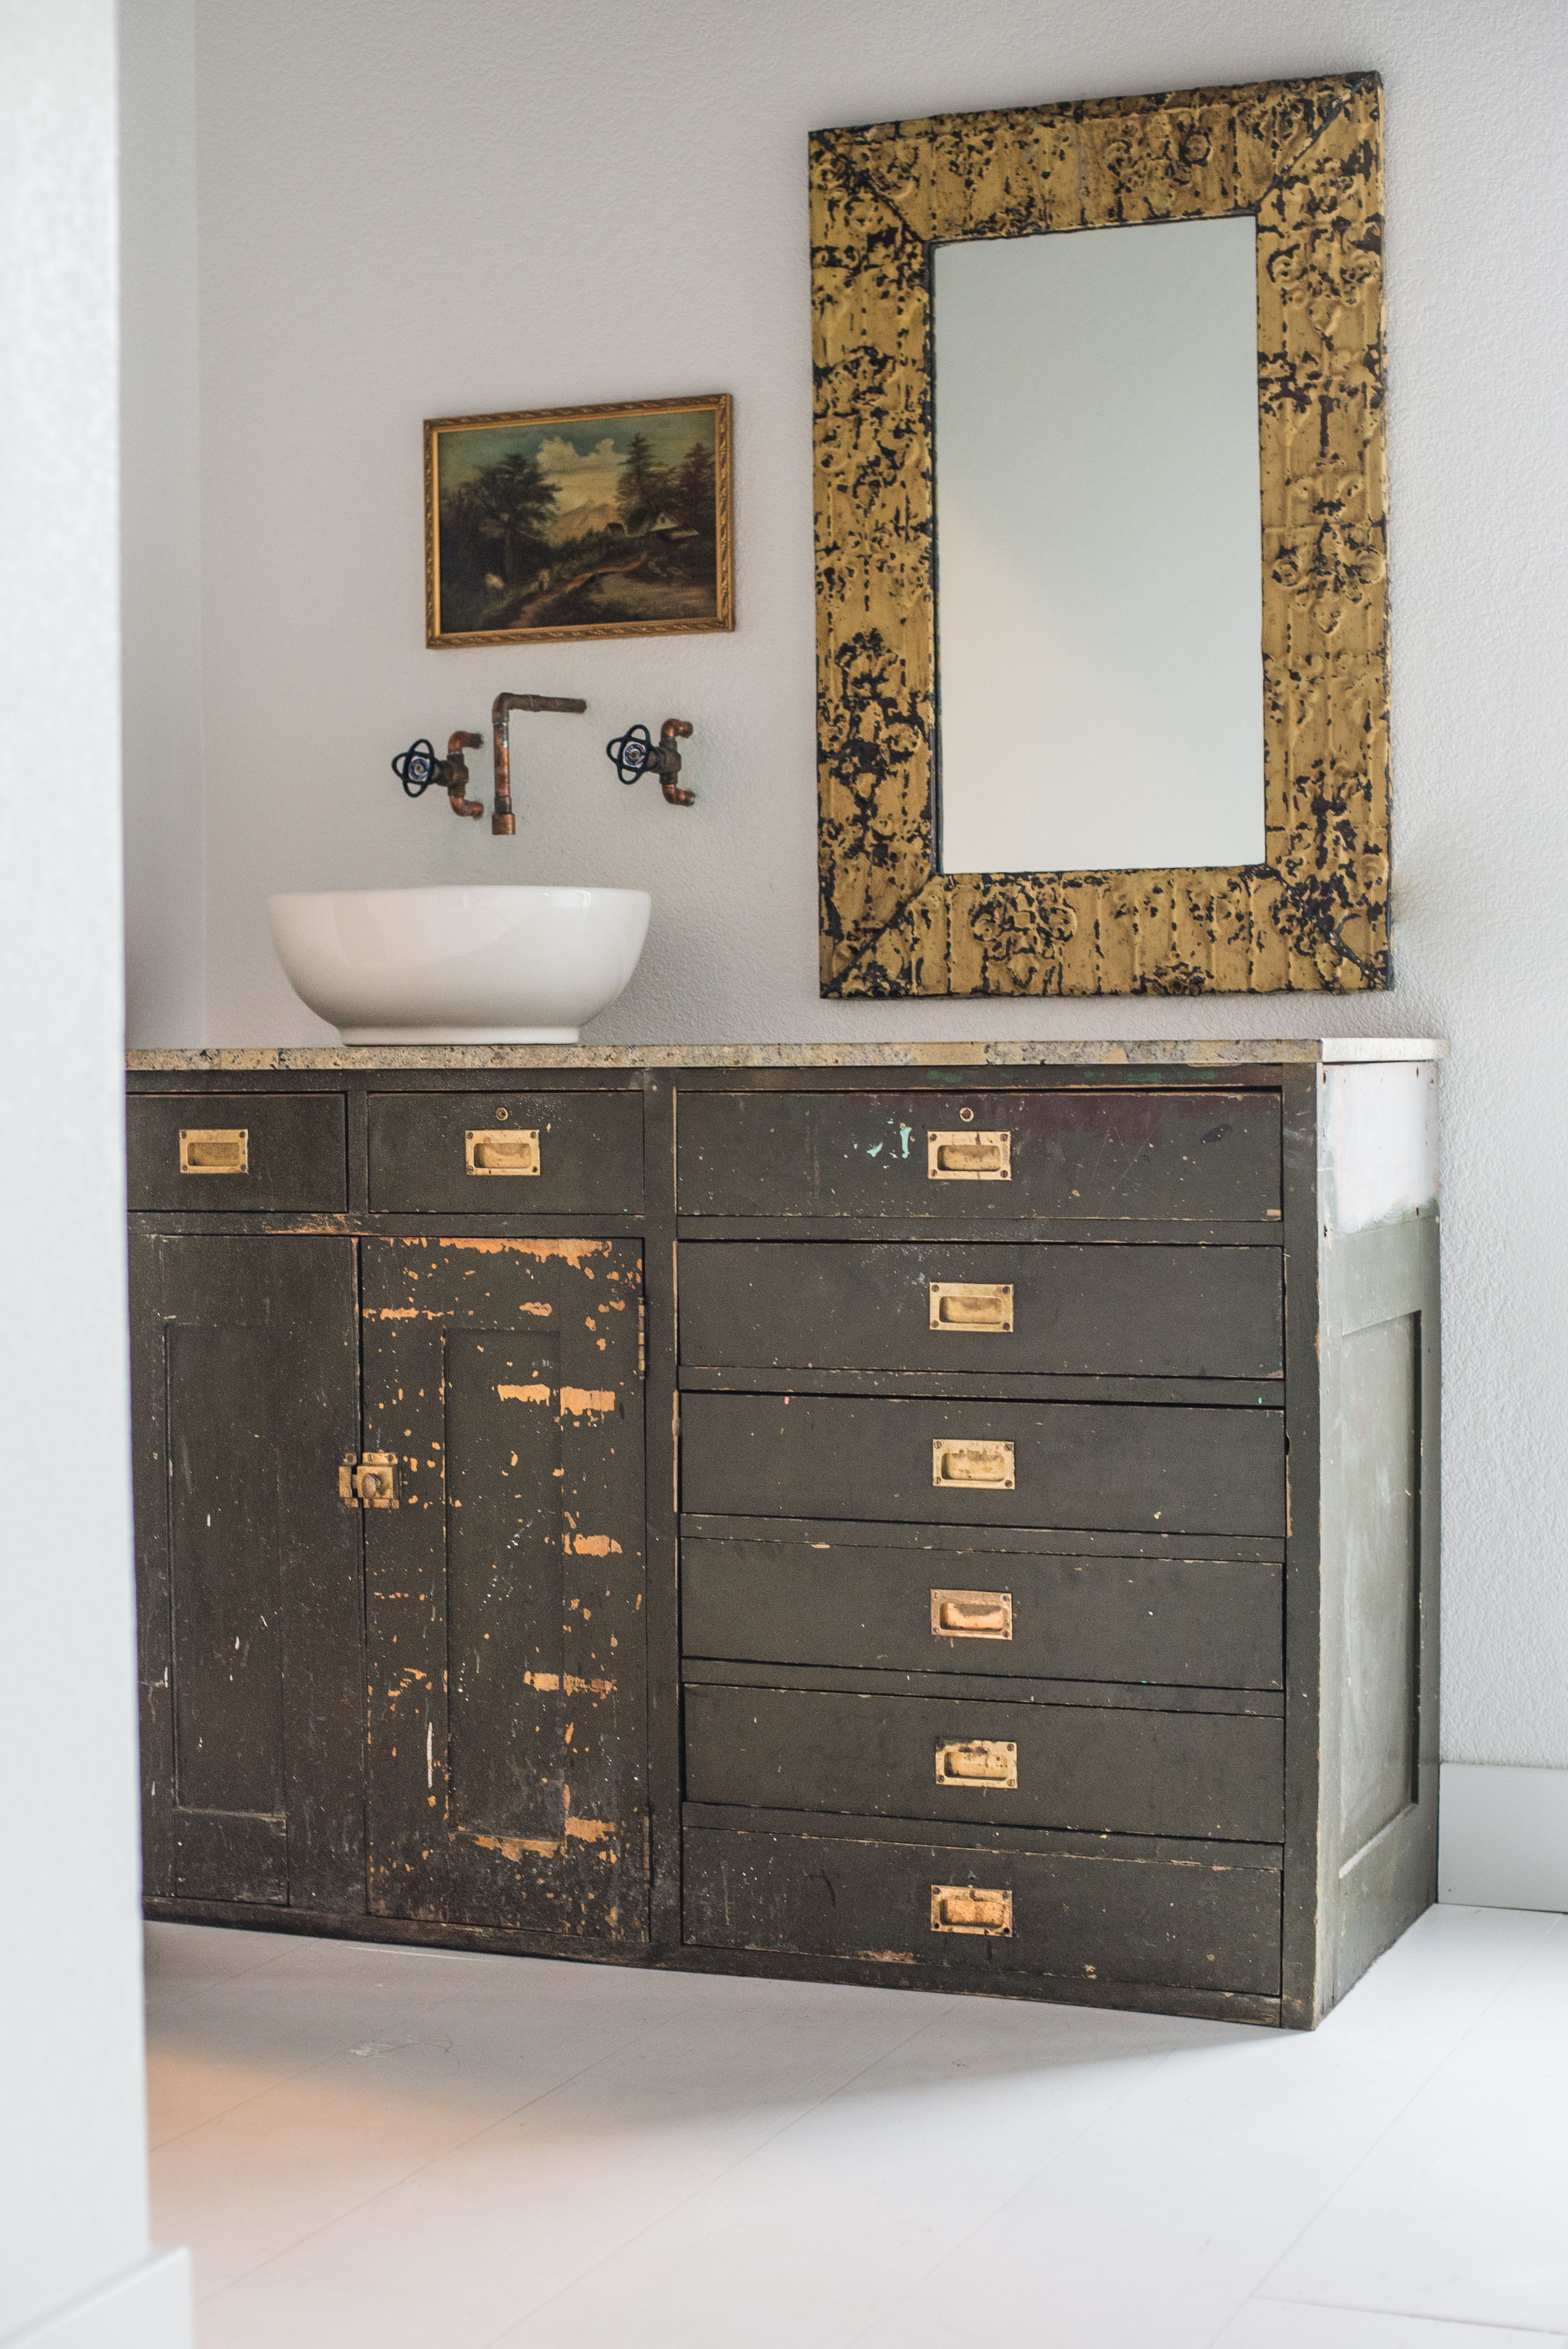 Before And After Of A Bathroom Vanity Using Recycled Furniture And